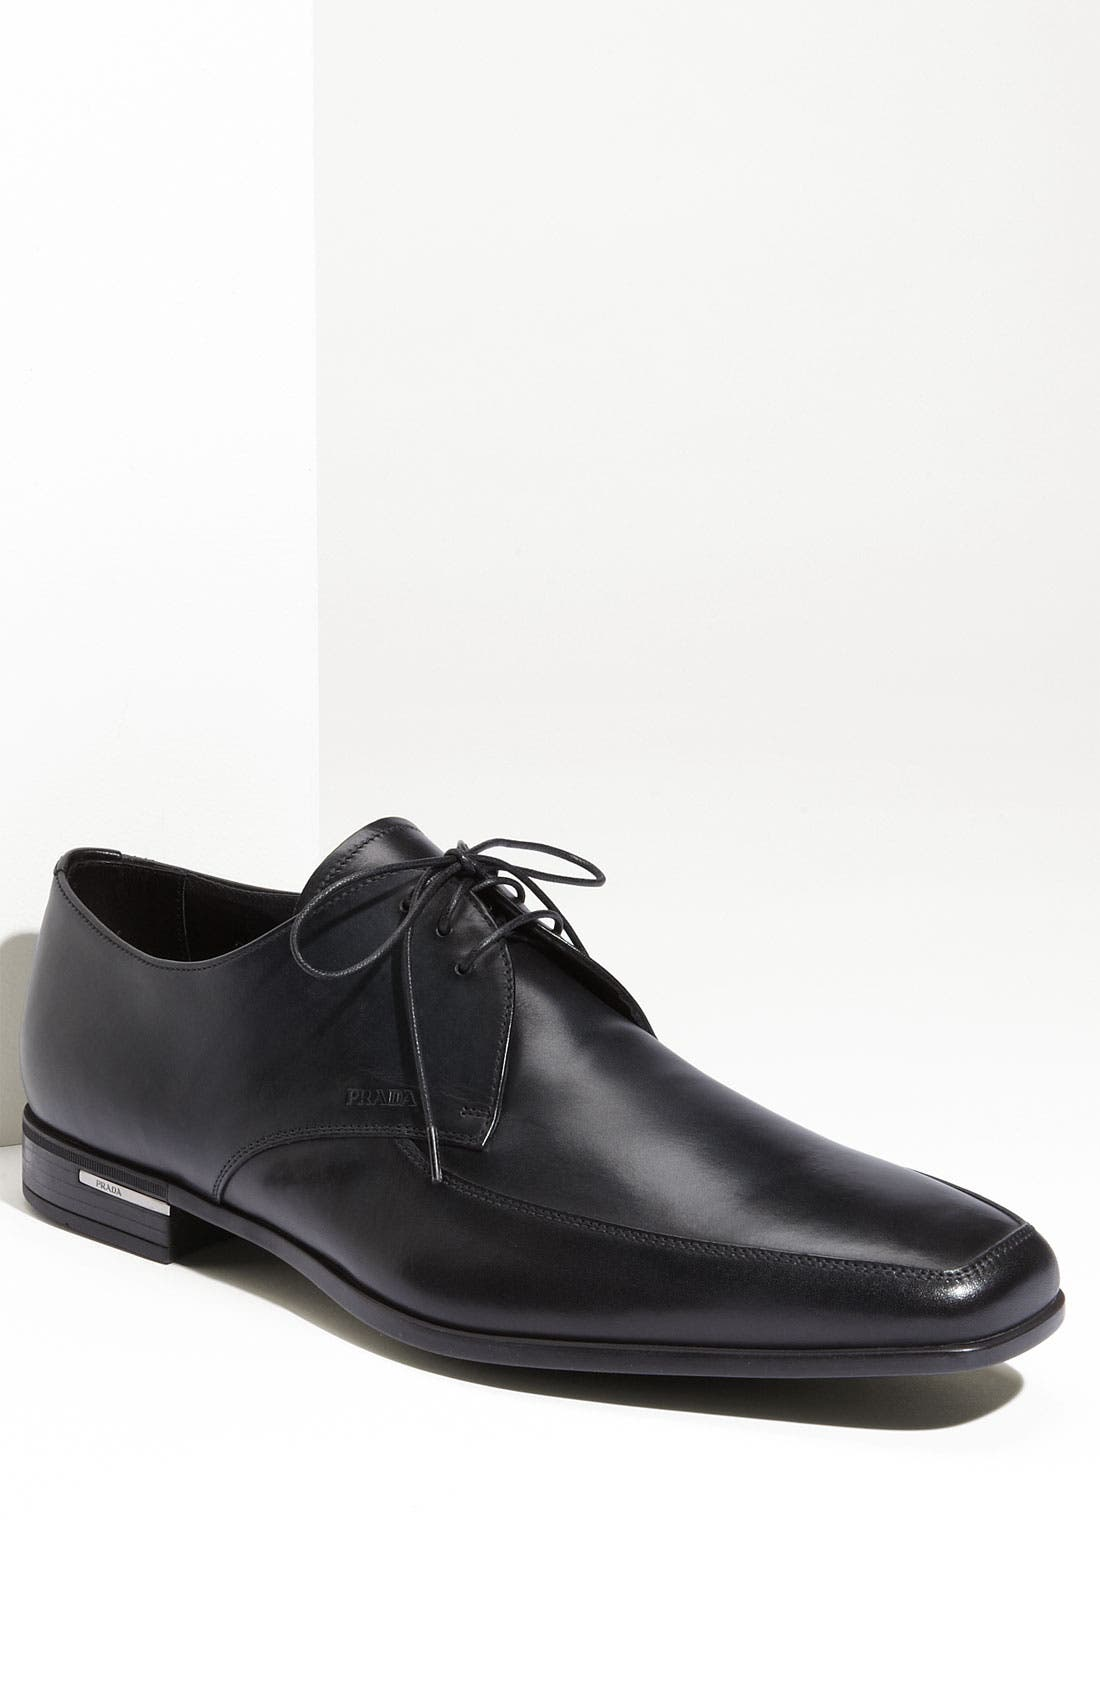 Main Image - Prada Apron Toe Oxford